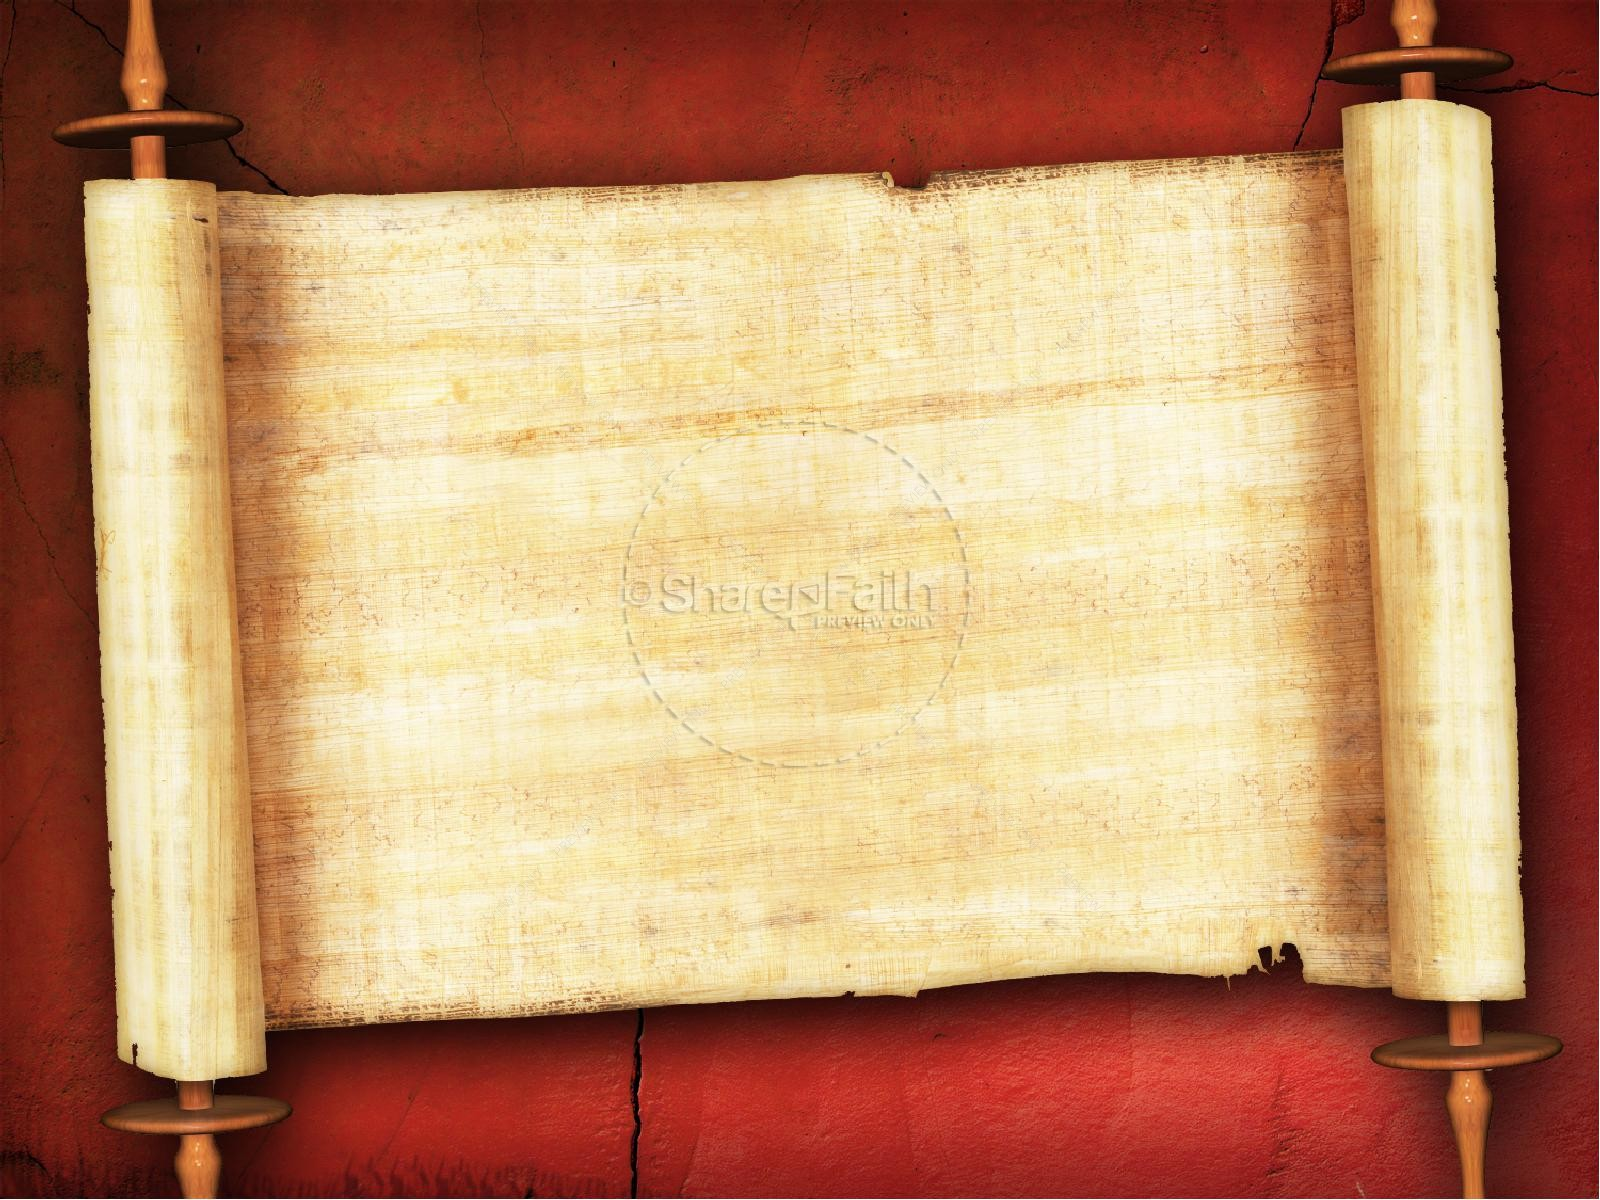 Scroll powerpoint background gidiyedformapolitica scroll powerpoint background toneelgroepblik Gallery